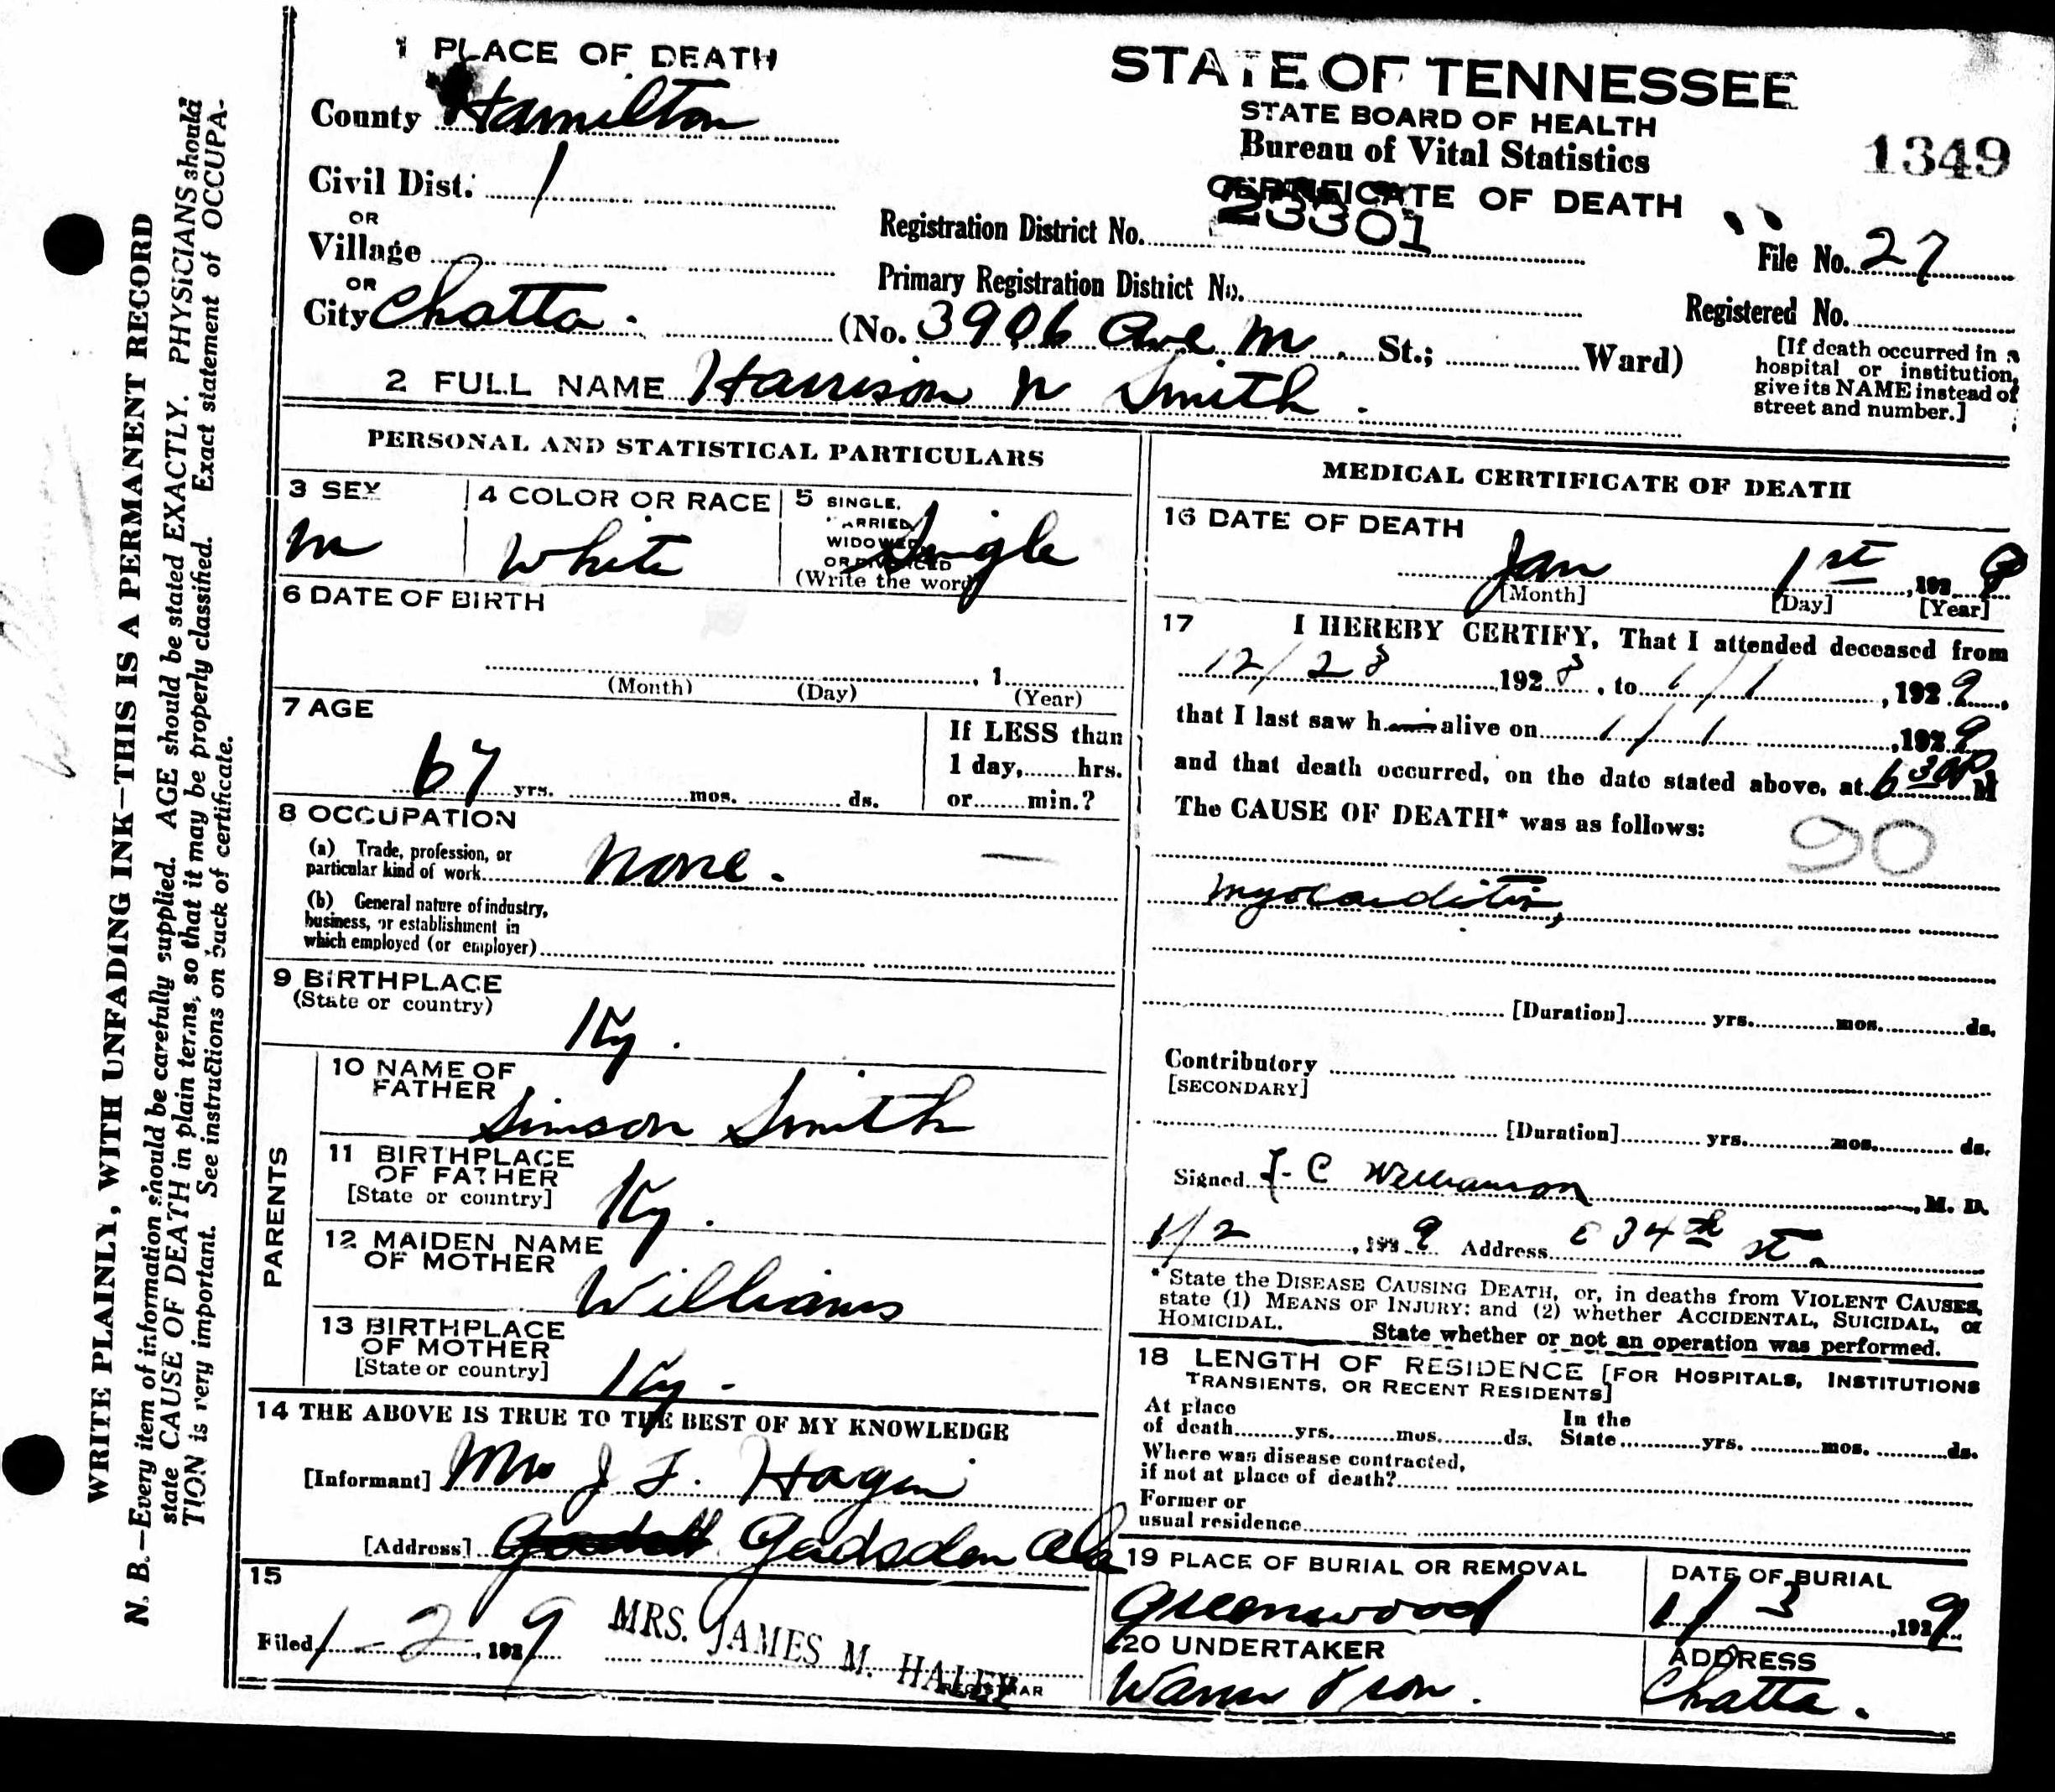 Death certificates sm tennessee death certificate 1349 harrison n smith 1861 1929 simson smith williams jf hagen chattanooga gadsden hamilton alabama kentucky xflitez Gallery